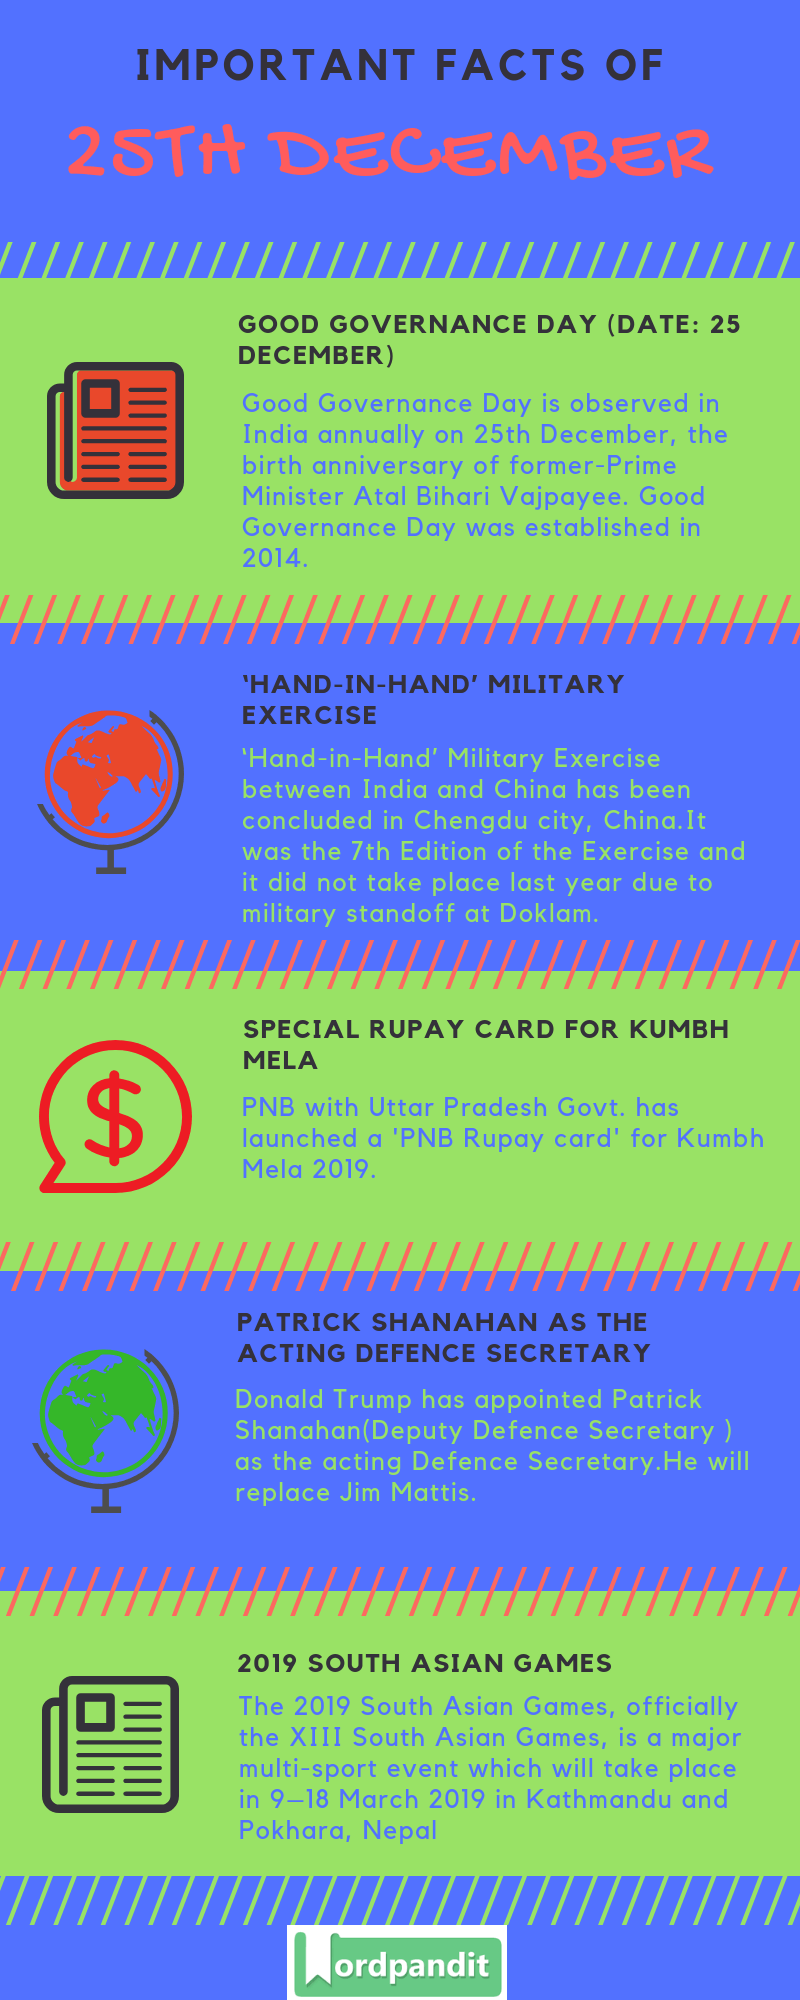 Daily Current Affairs 25 December 2018 Current Affairs Quiz 25 December 2018 Current Affairs Infographic